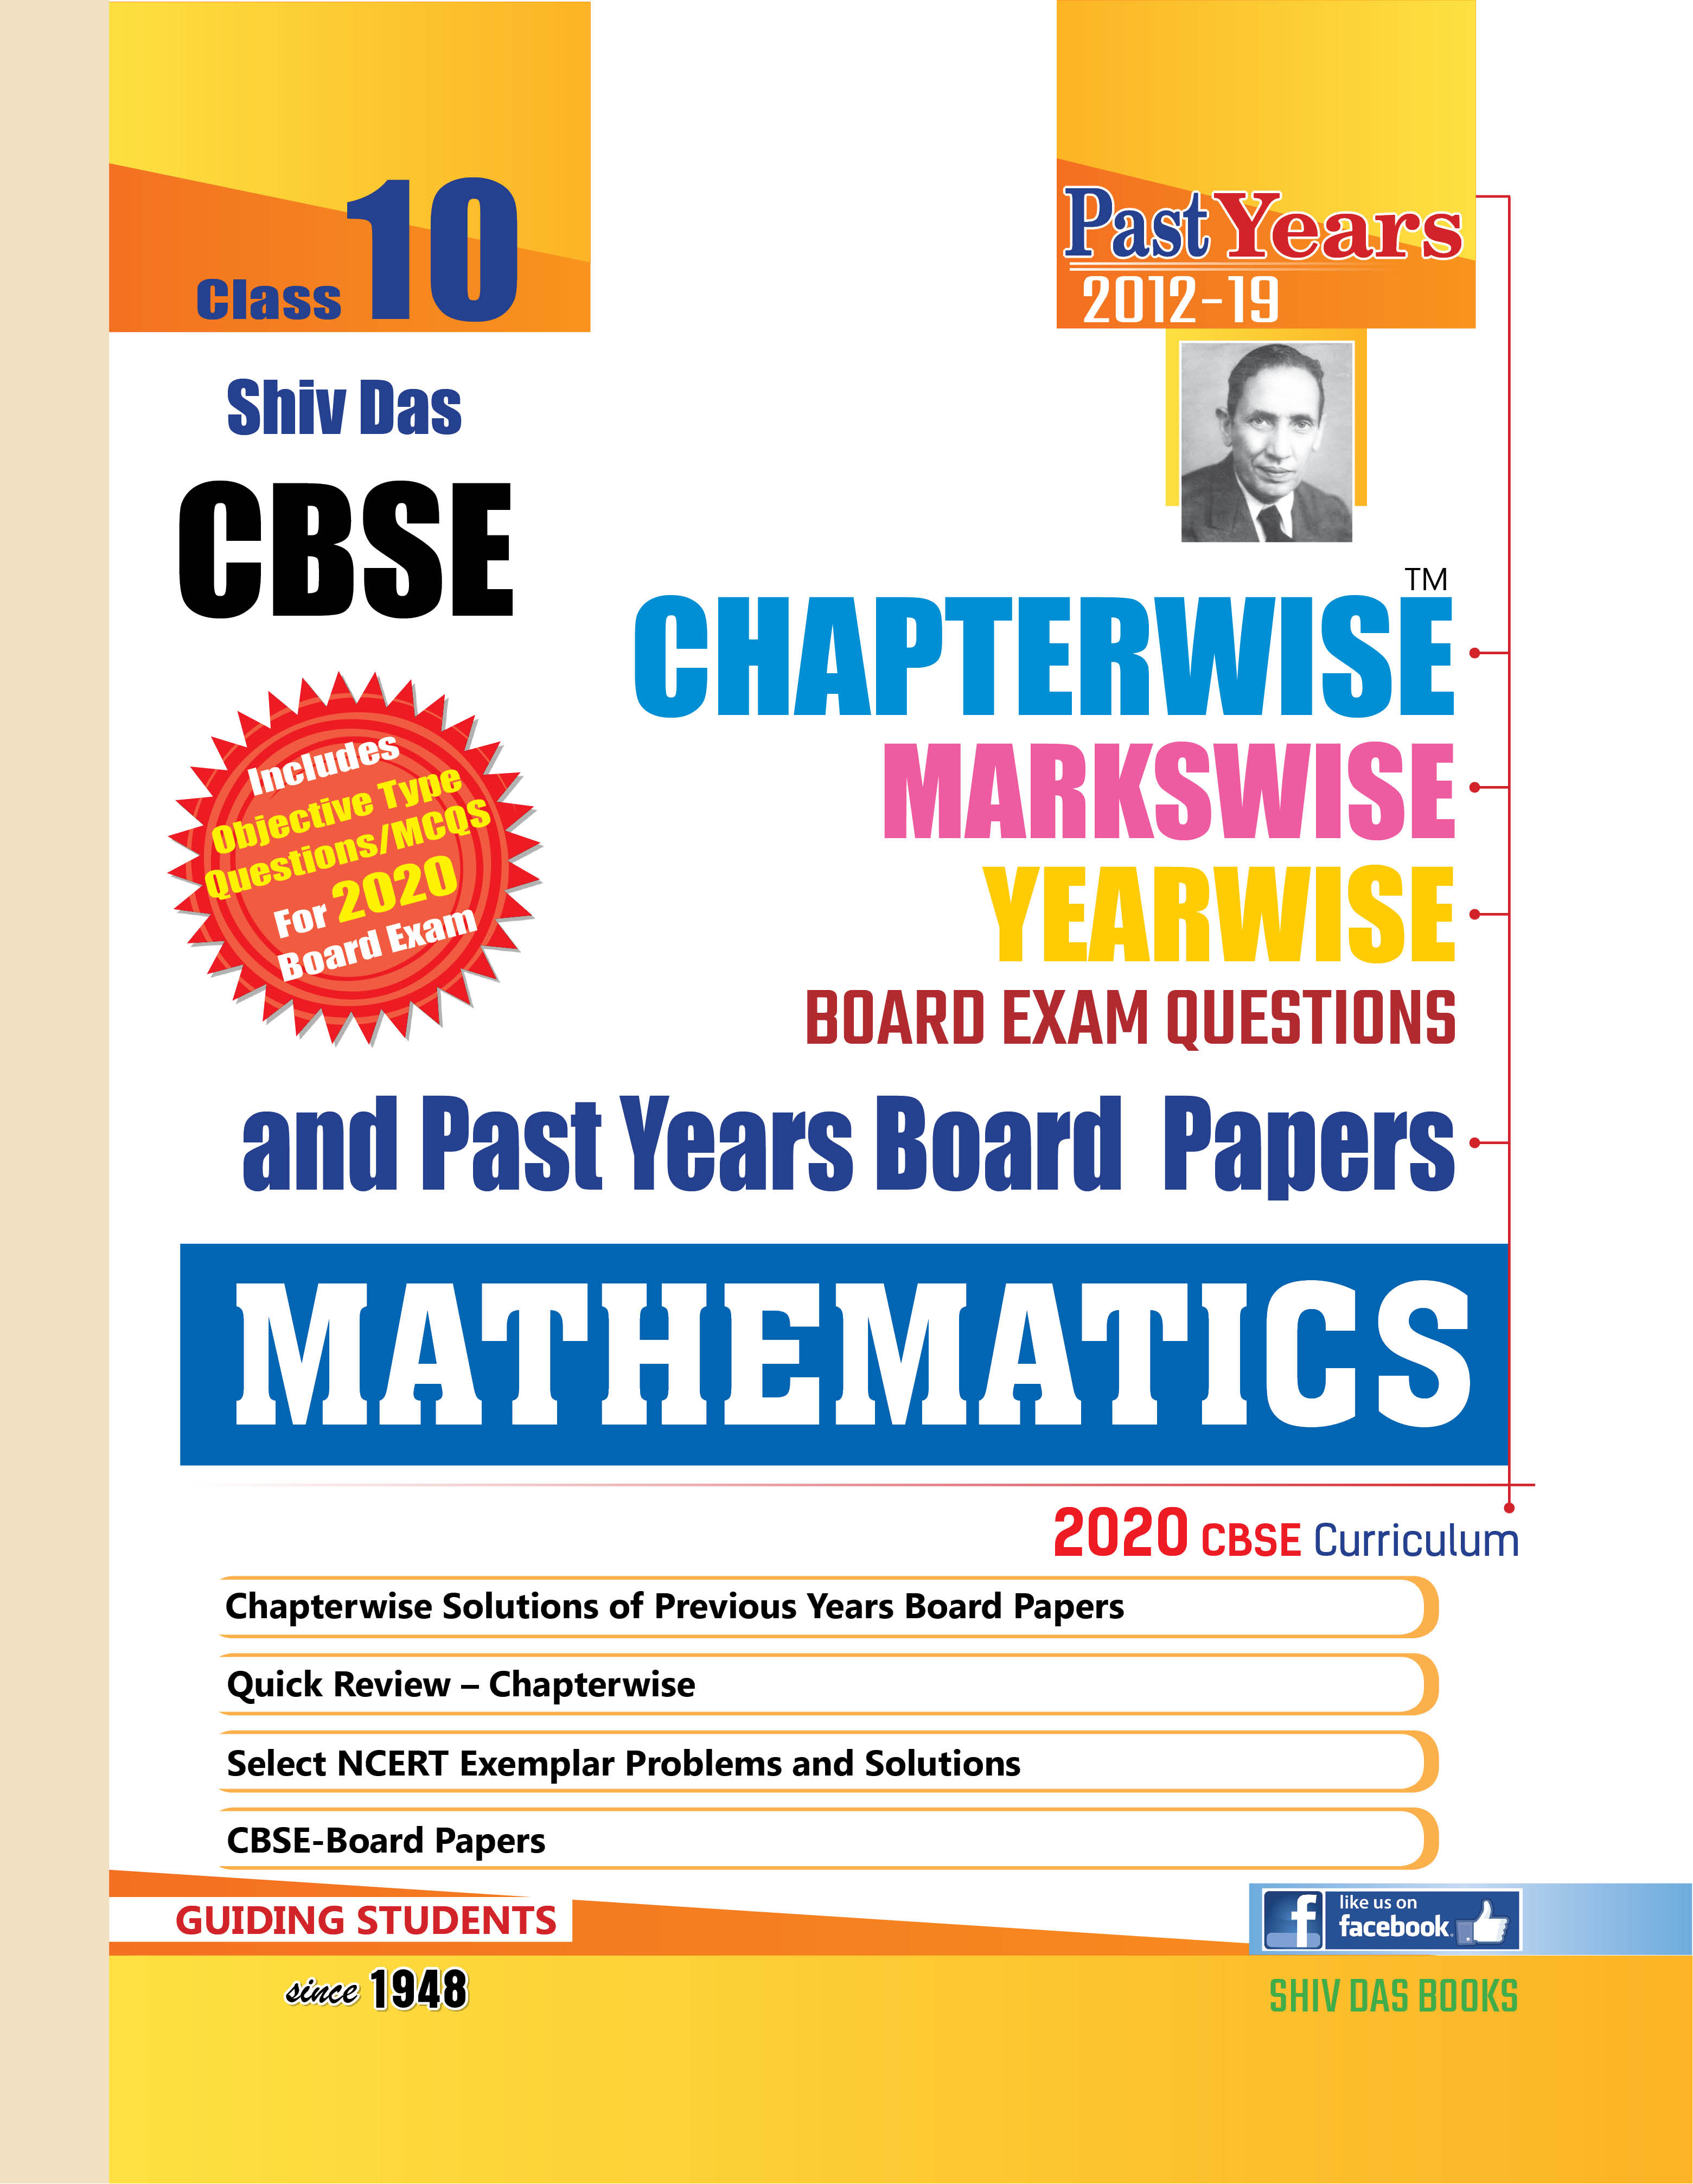 CBSE Chapterwise Markswise Yearwise Board Exam Questions & Past Years Board Papers For Class 10 Maths (2020 Board Exam Edition)